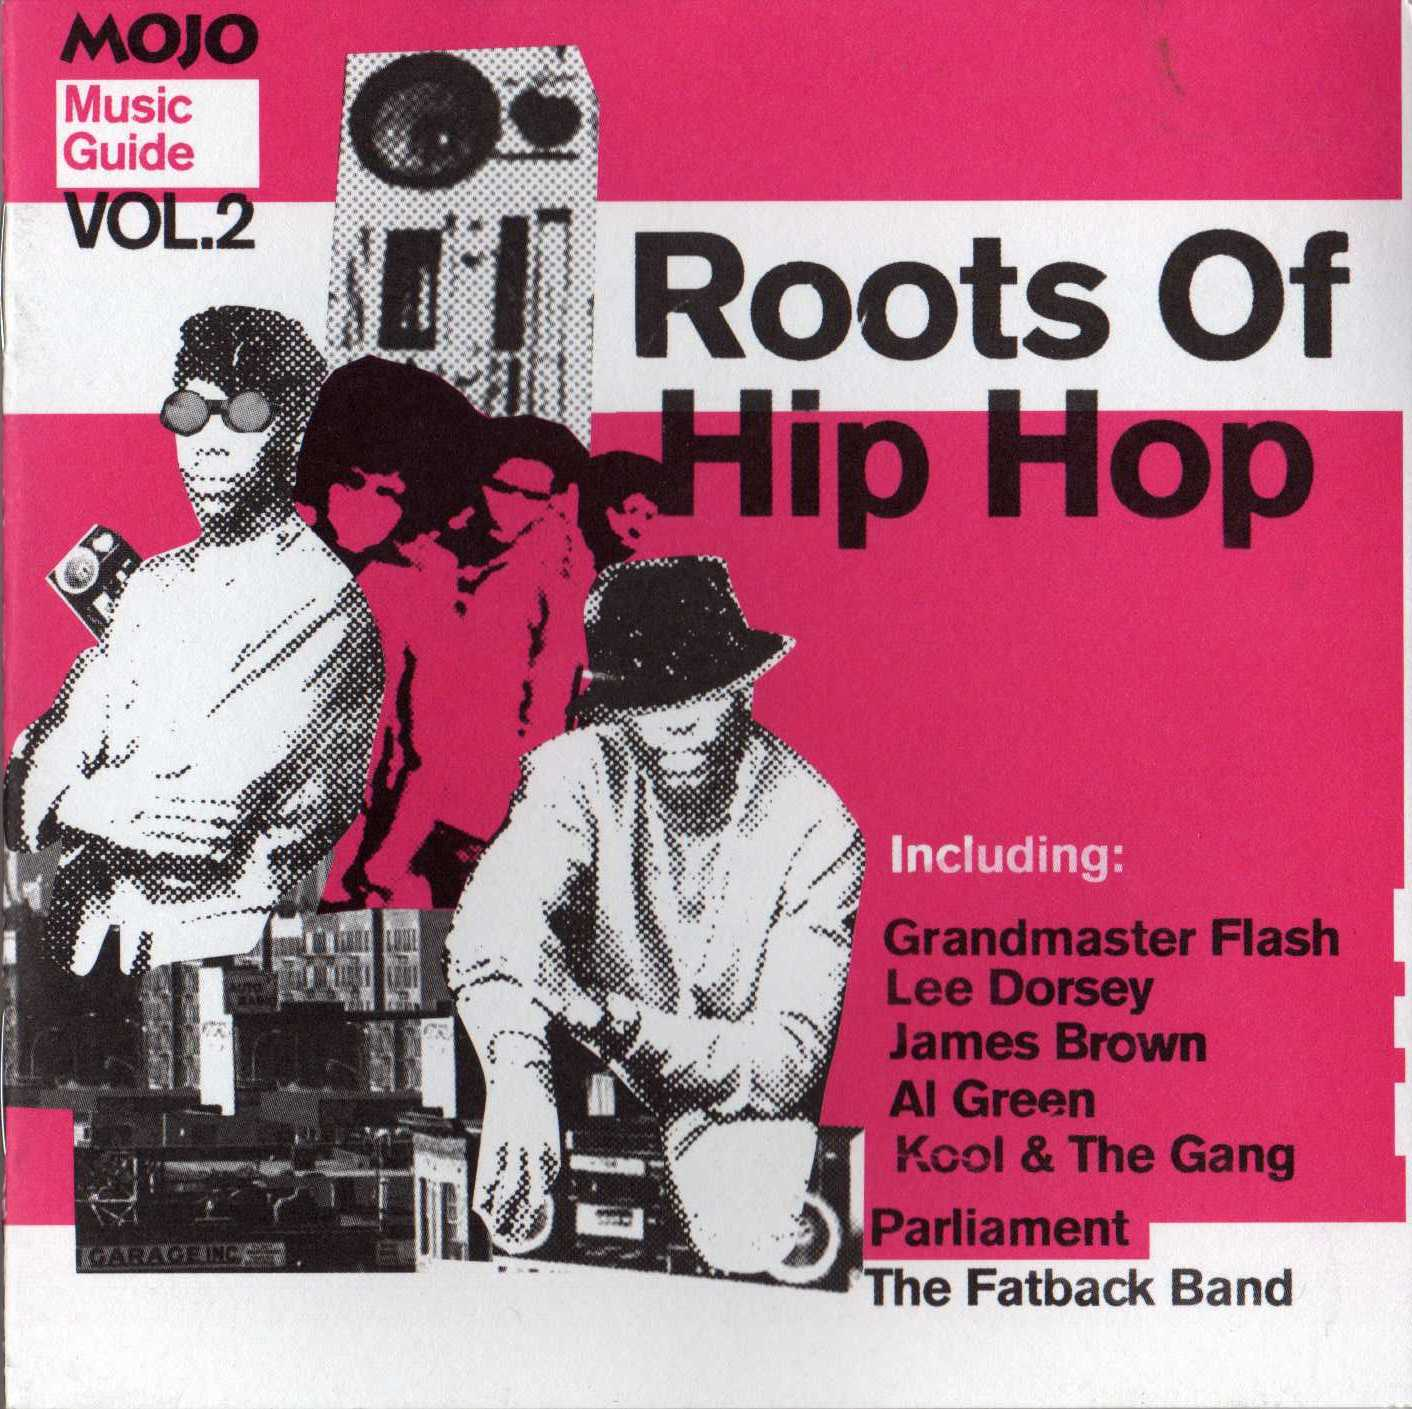 Mojo Music Guide Vol.2 - Roots of Hip Hop (320)